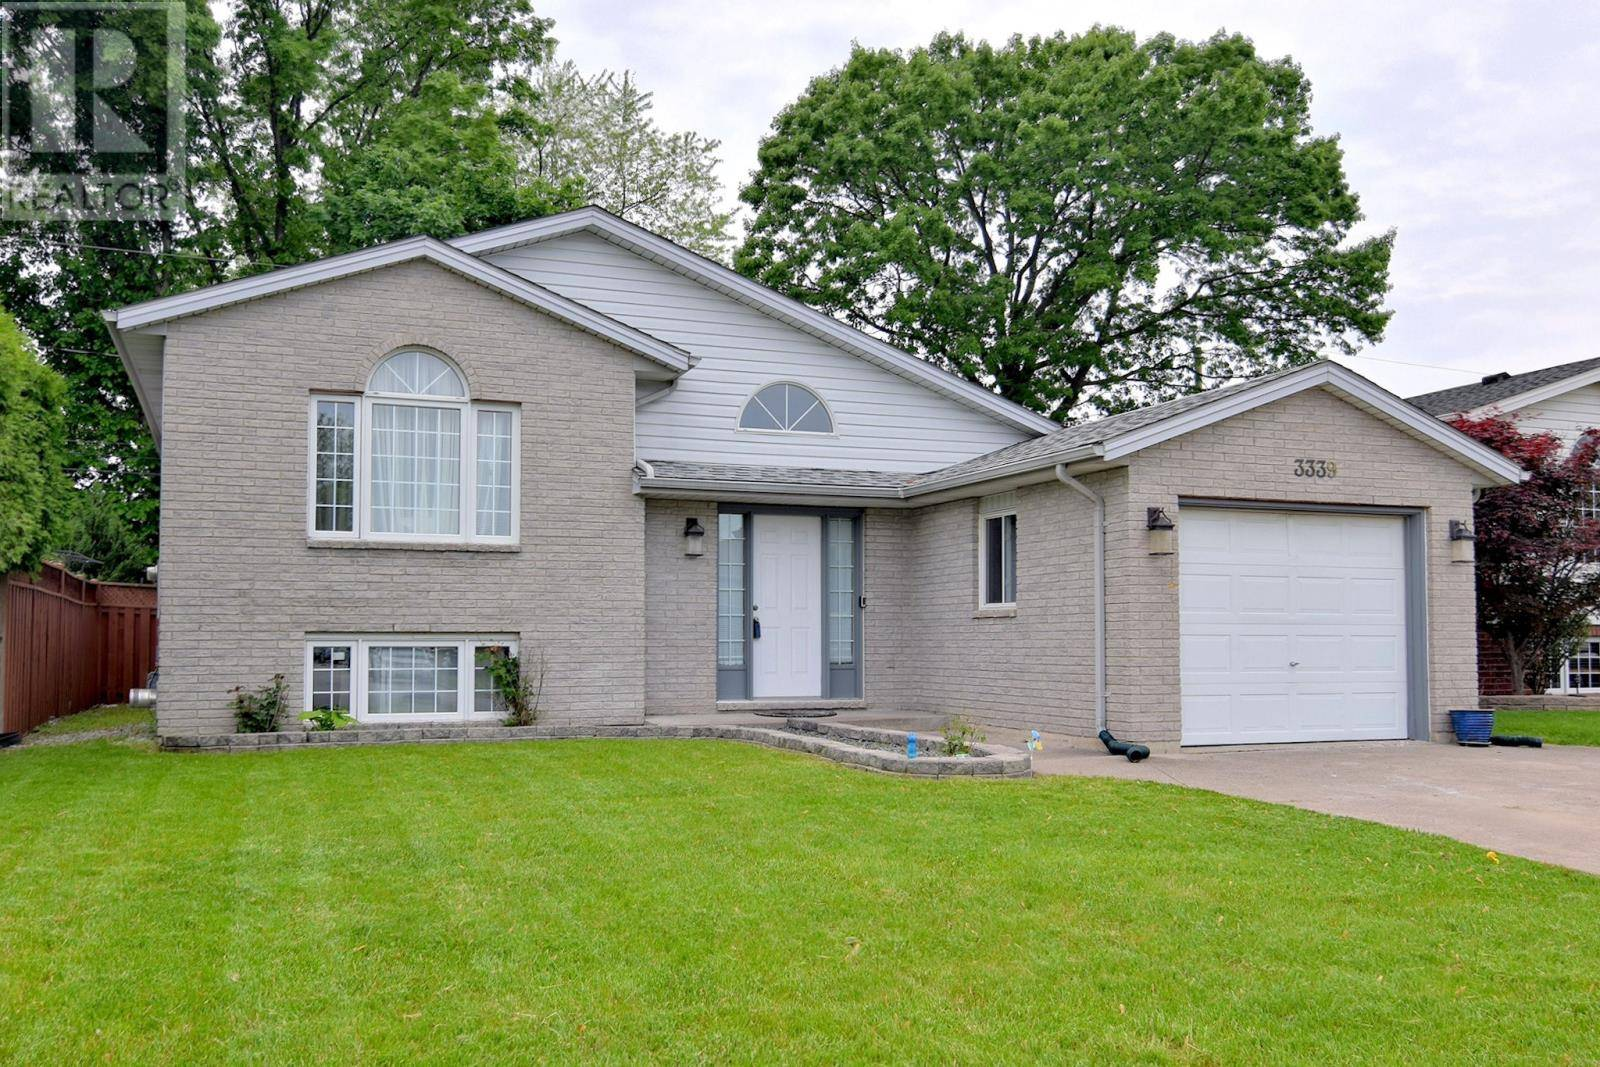 House for sale at 3339 Conservation  Windsor Ontario - MLS: 19023080